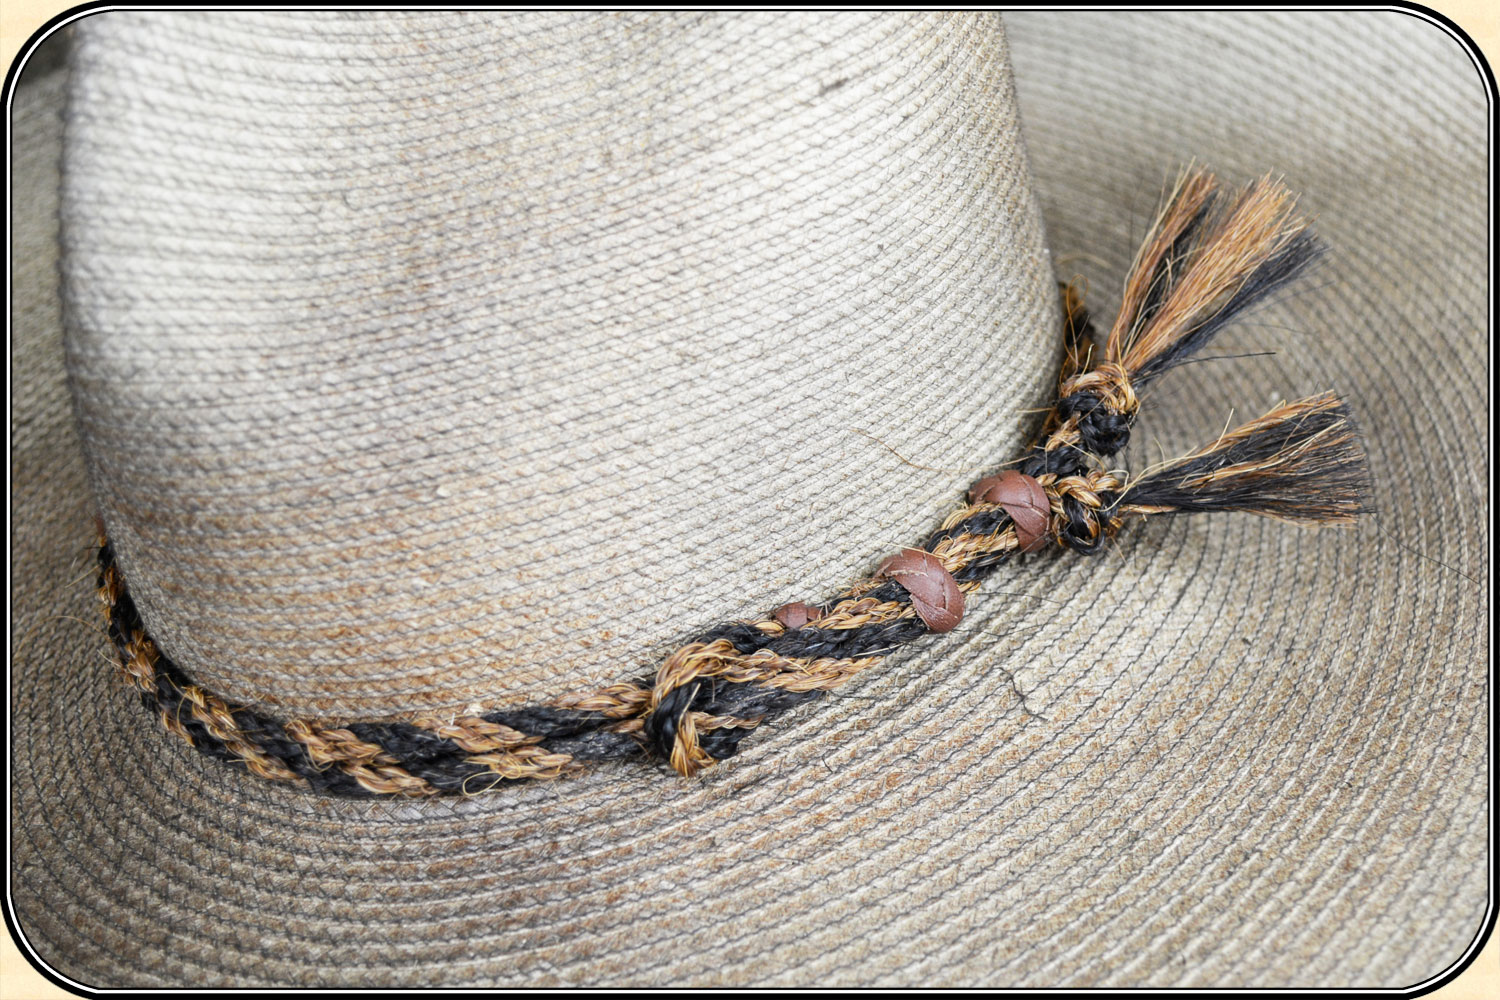 c014098f037 Twisted horse hair hat band 1 2 inch - Click to Enlarge Image